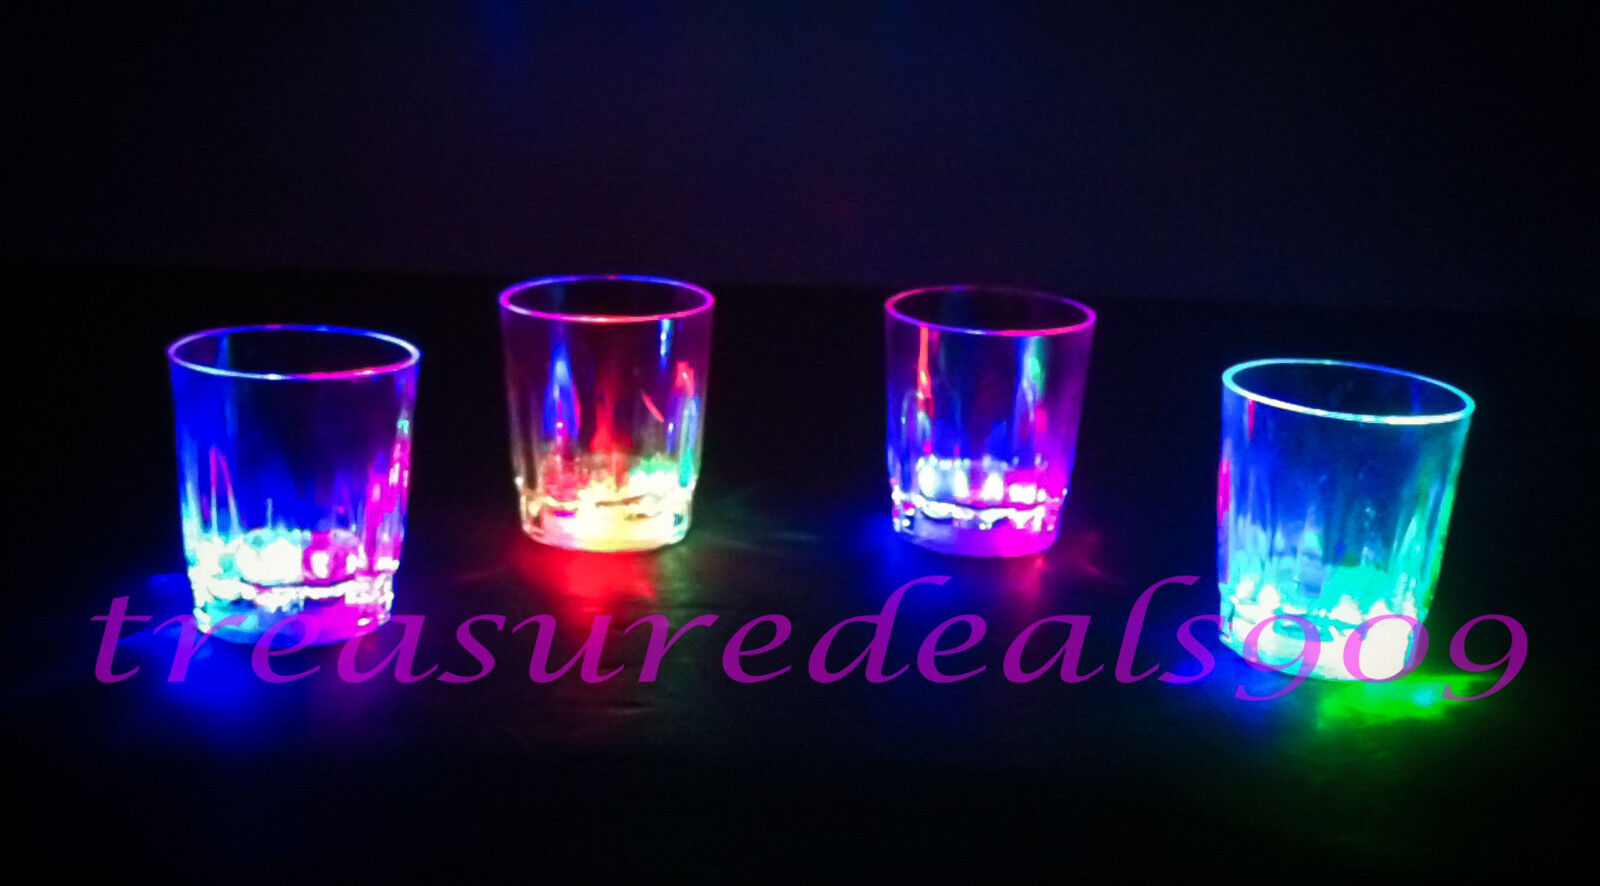 24 PCS LED LIGHT UP DRINK SHOT GLASSES ACRYLIC FLASHING CUPS BLINKING BEER GLASS